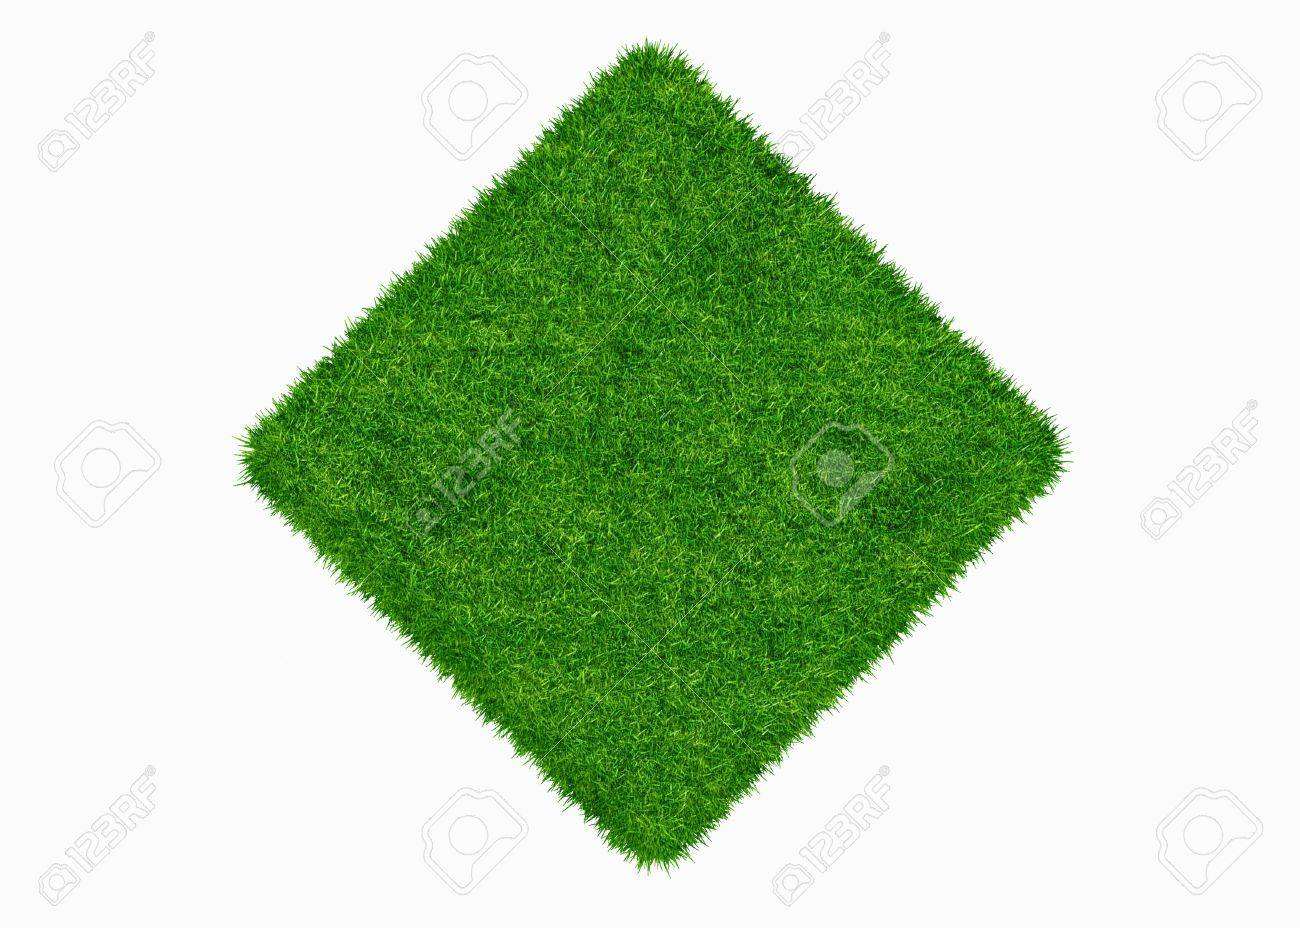 Empty green grass blank isolated 3d model - 18269712